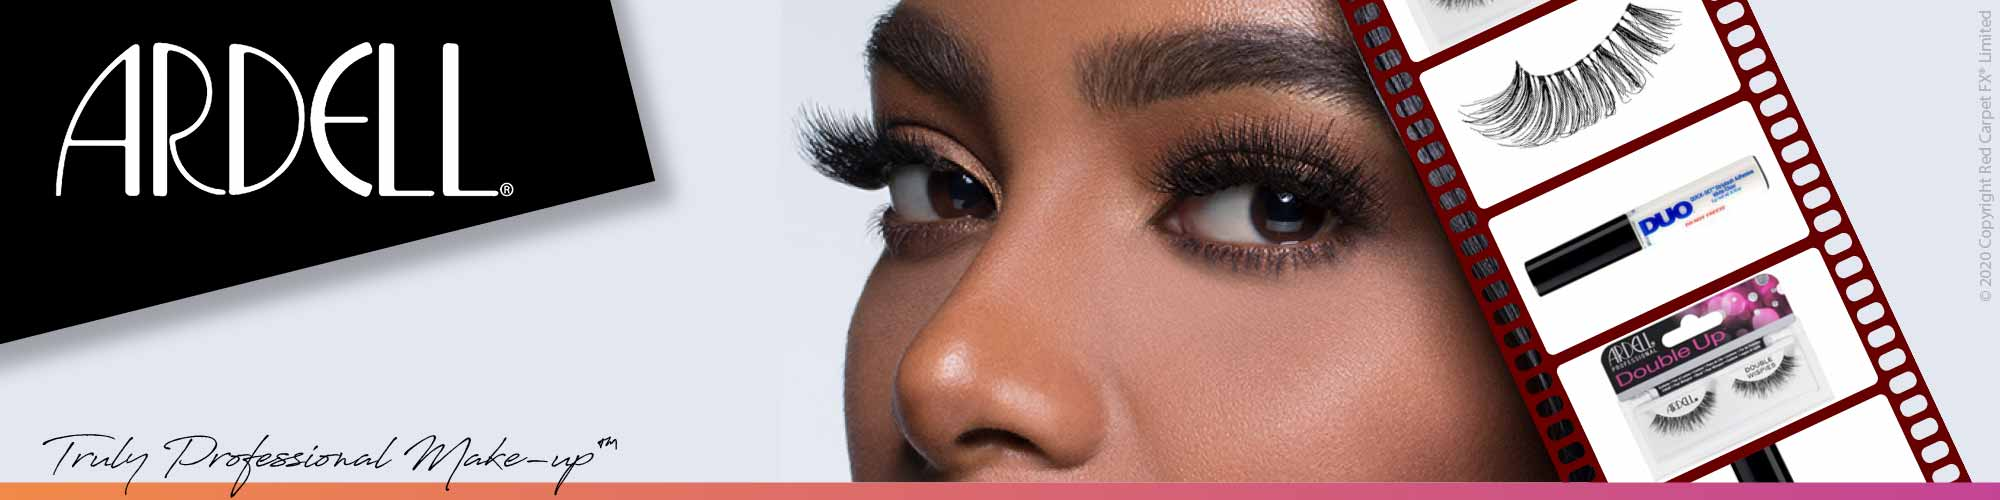 Ardell Professional Lashes - Brand Banner Image